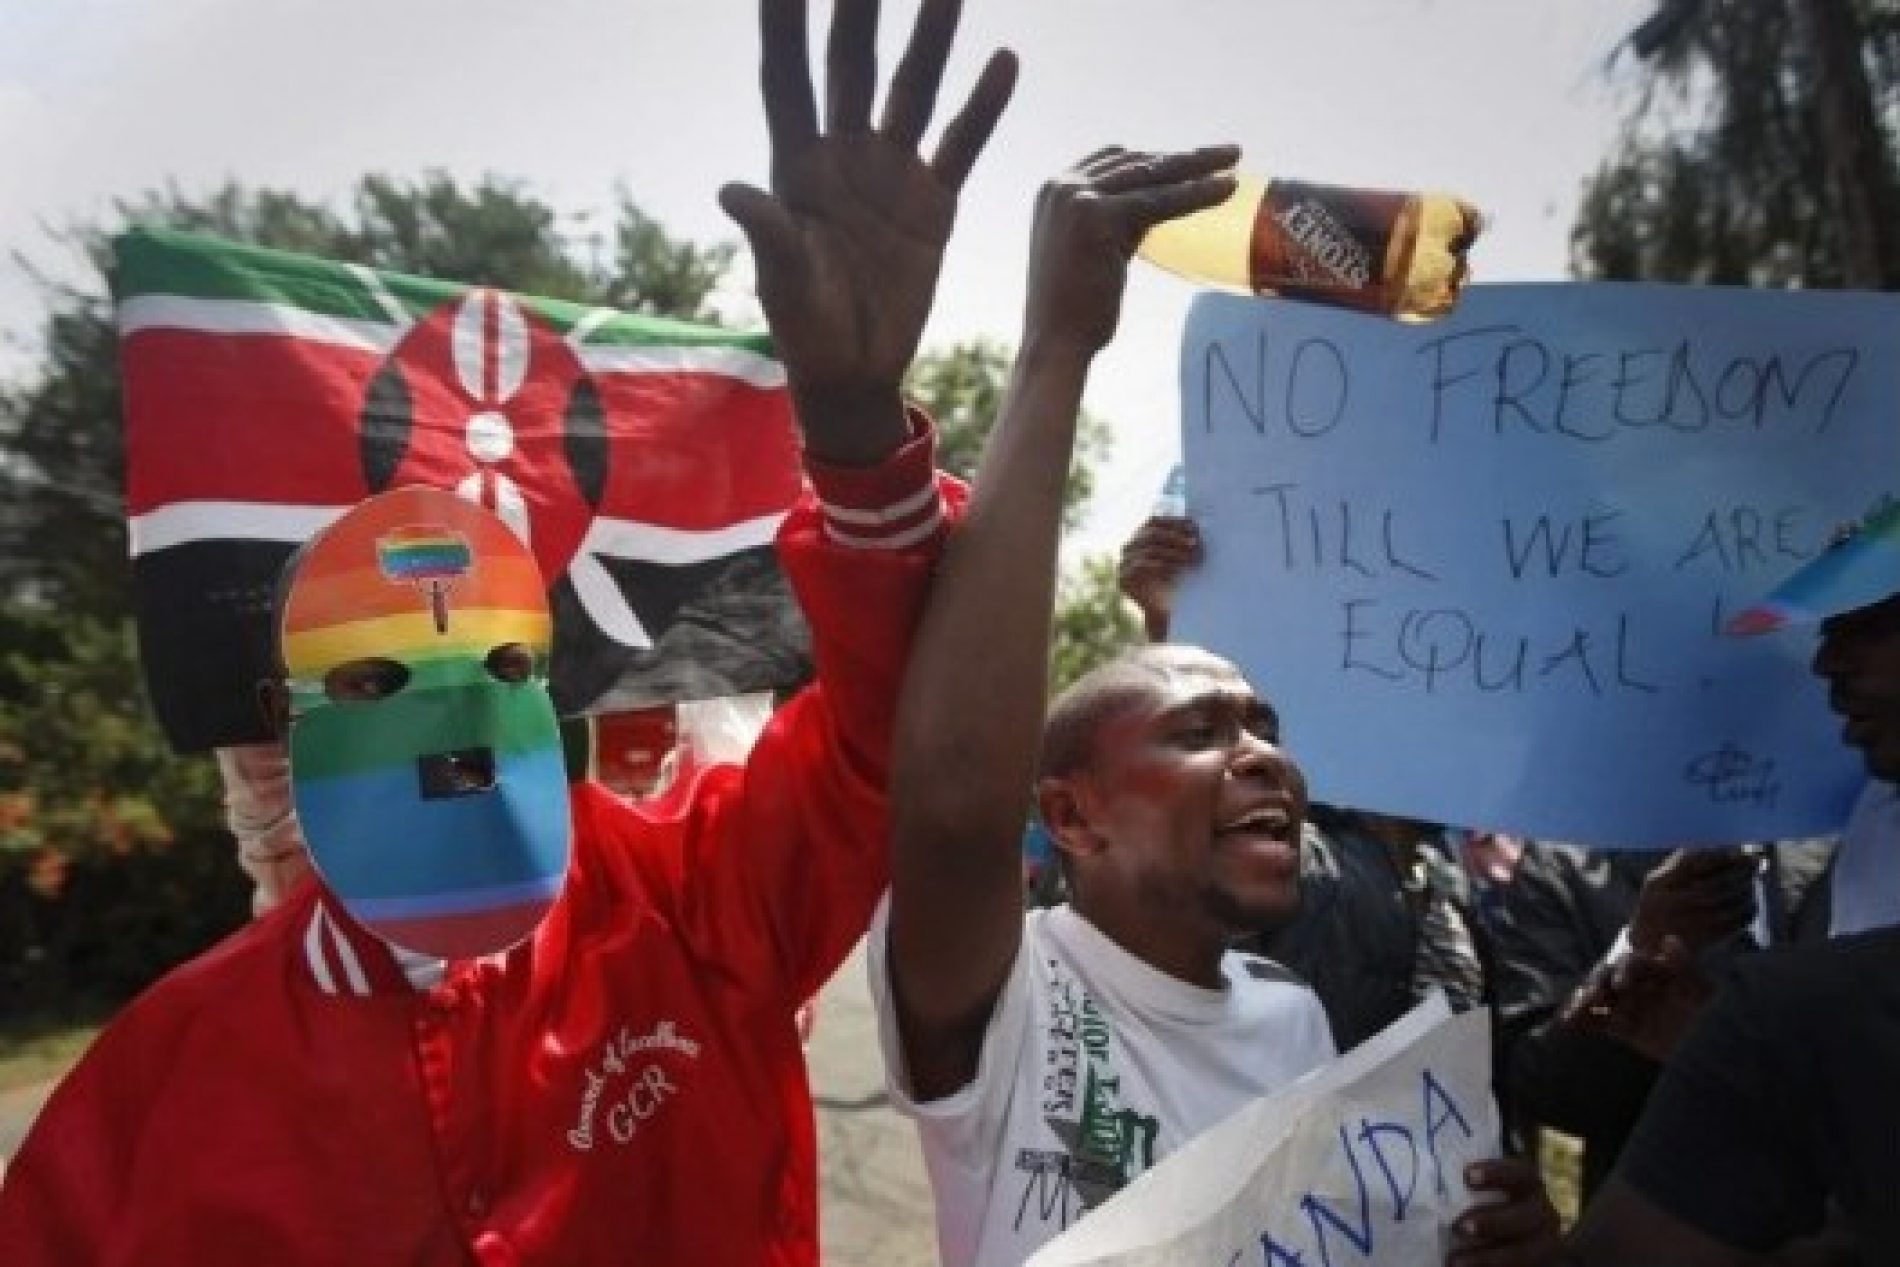 Kenya LGBT Community Have High Hopes As High Court Ruling on Decriminalizing Gay Sex Draws Near